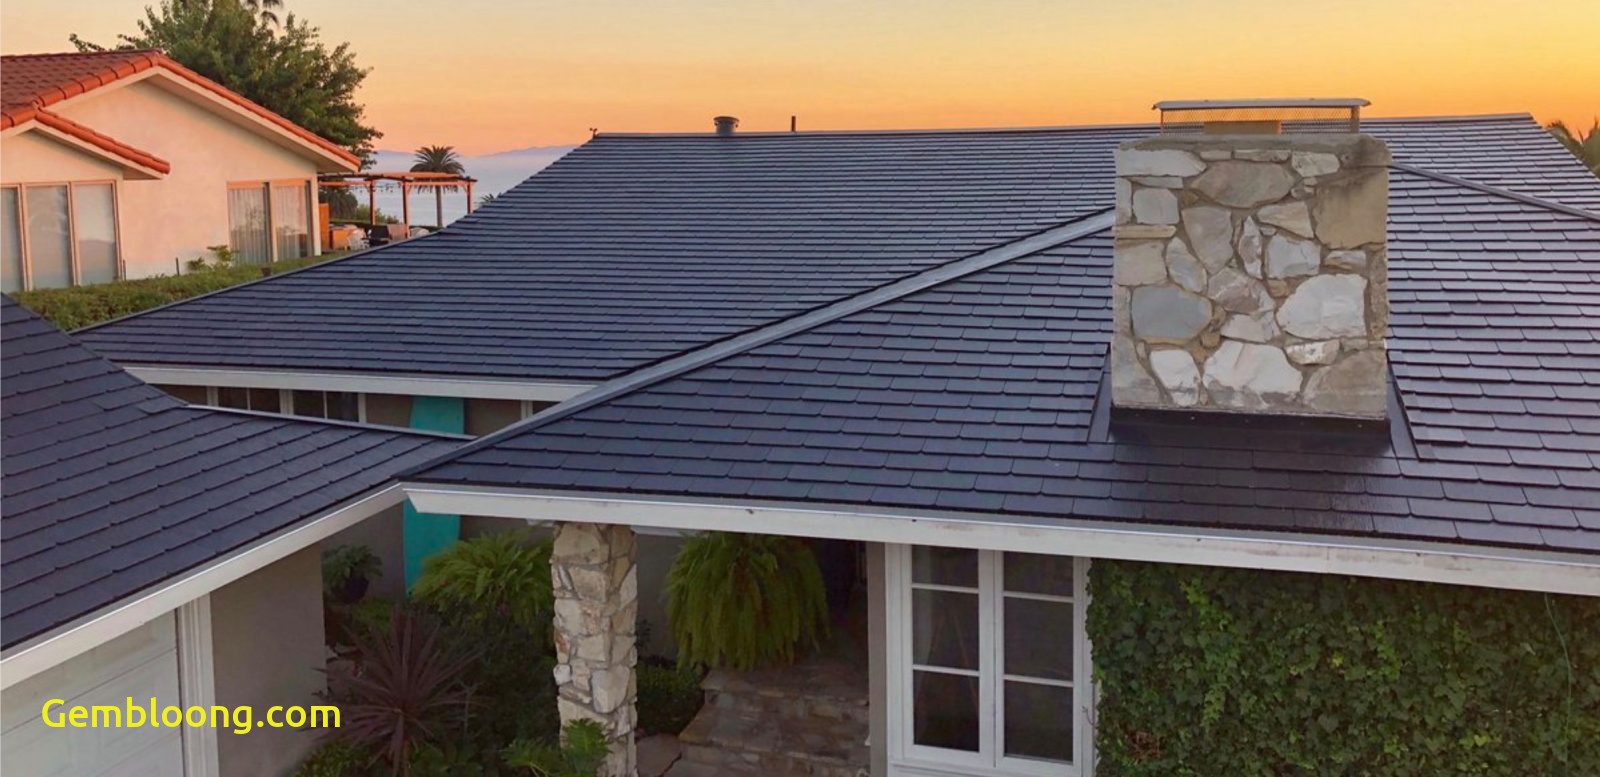 Tesla Roof Fresh Tesla solar Roof Volume Production is Delayed to Next Year